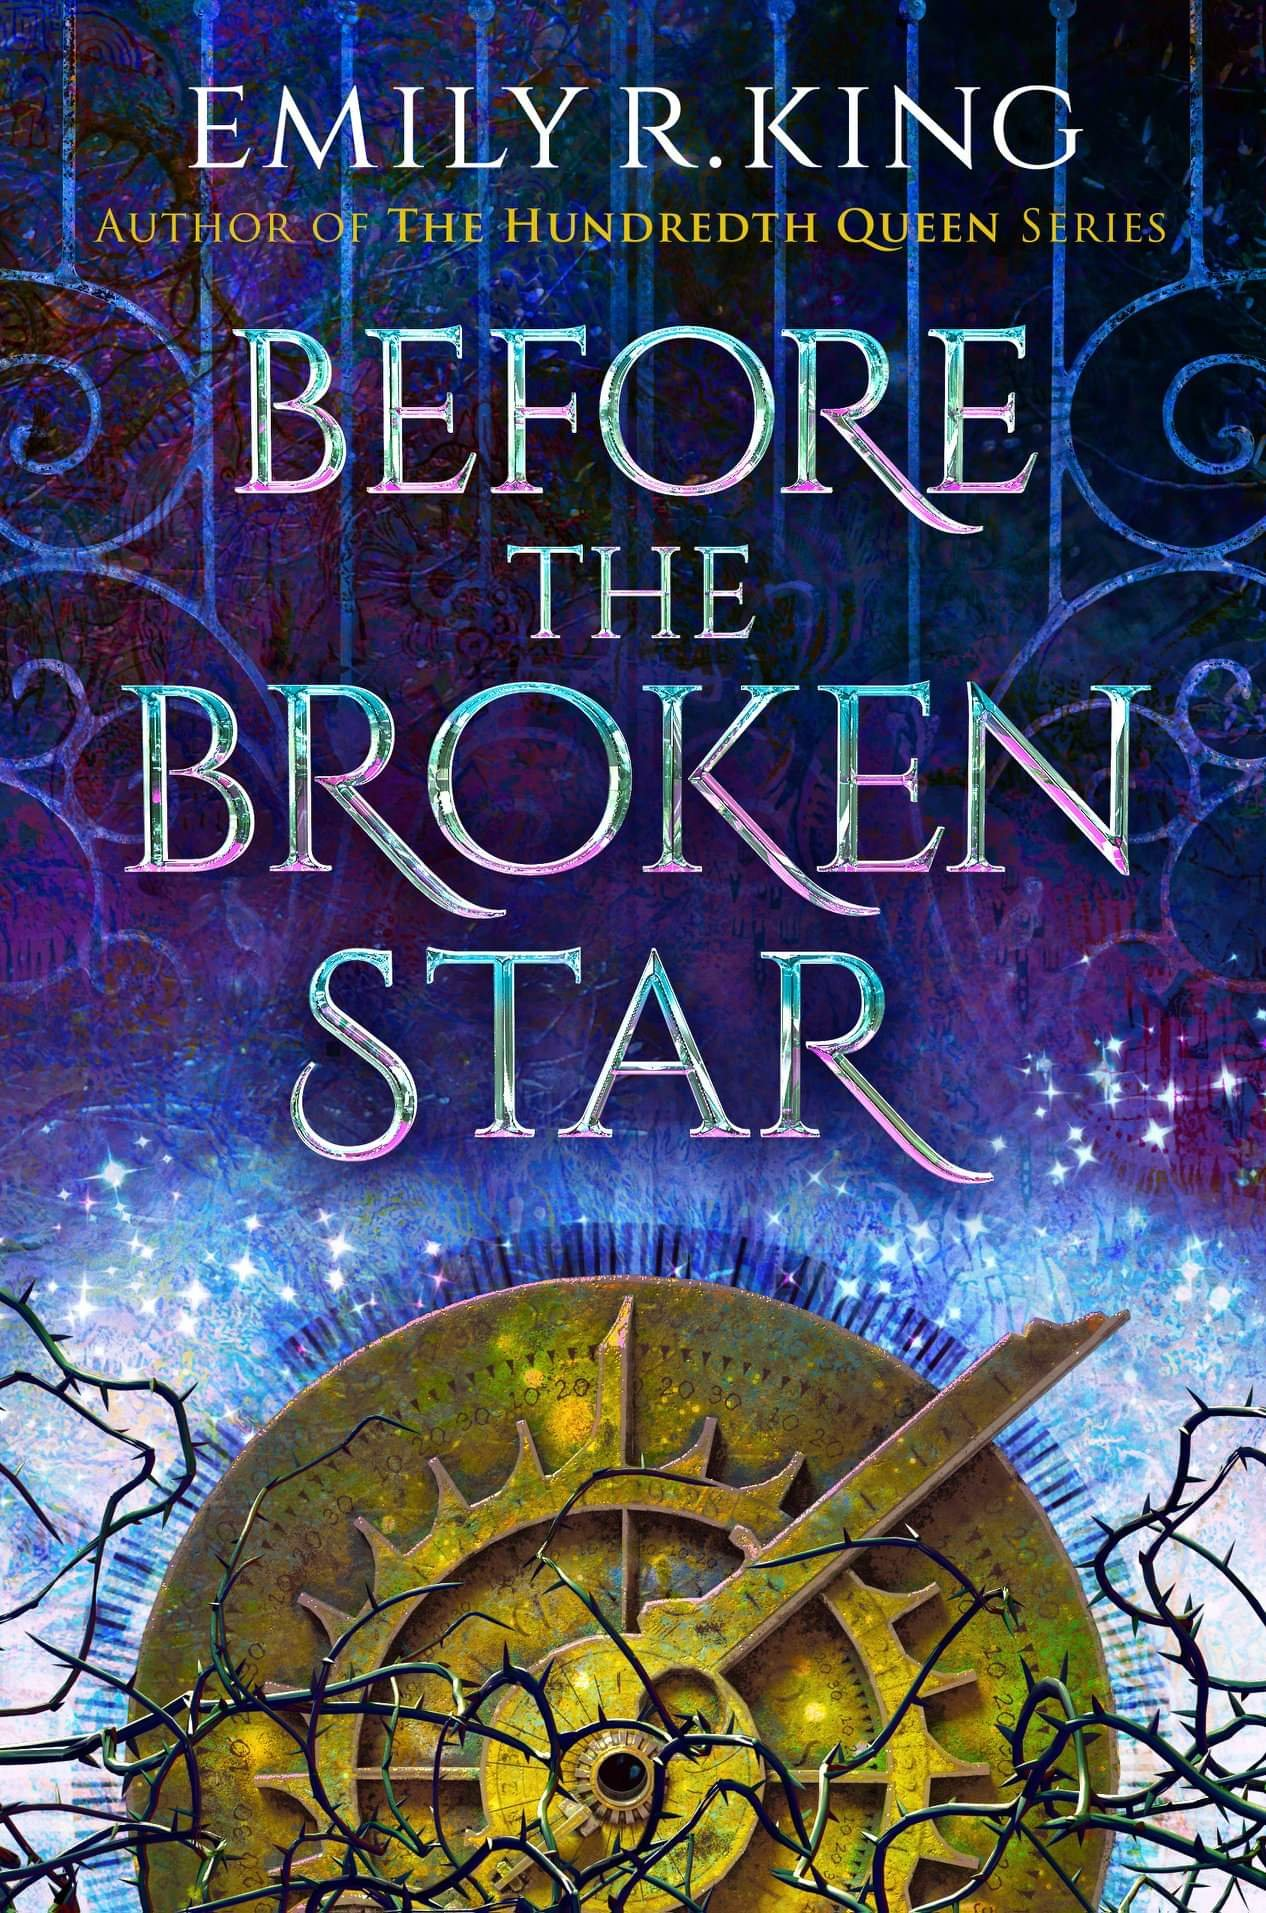 Emily R. King – Before The Broken